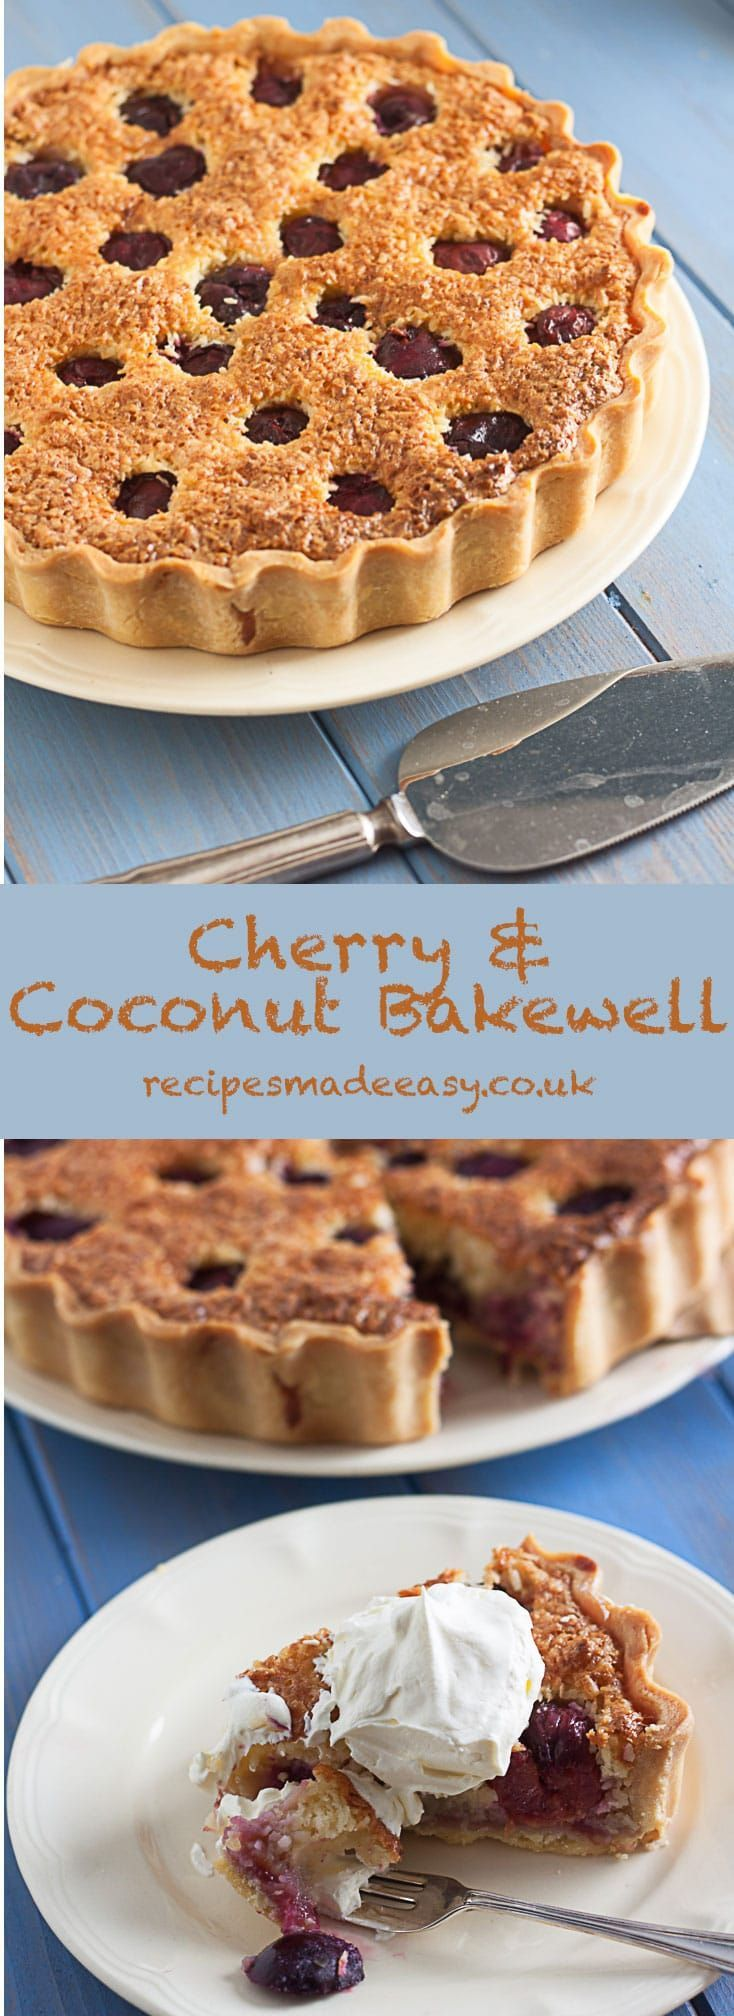 This Cherry & Coconut Bakewell Tart by recipes Made Easy  is a variation of a traditional Bakewell tart. Filled with cherry jam, fresh cherries and a delicious coconut frangipane. Delicious served hot or cold. via @jacdotbee